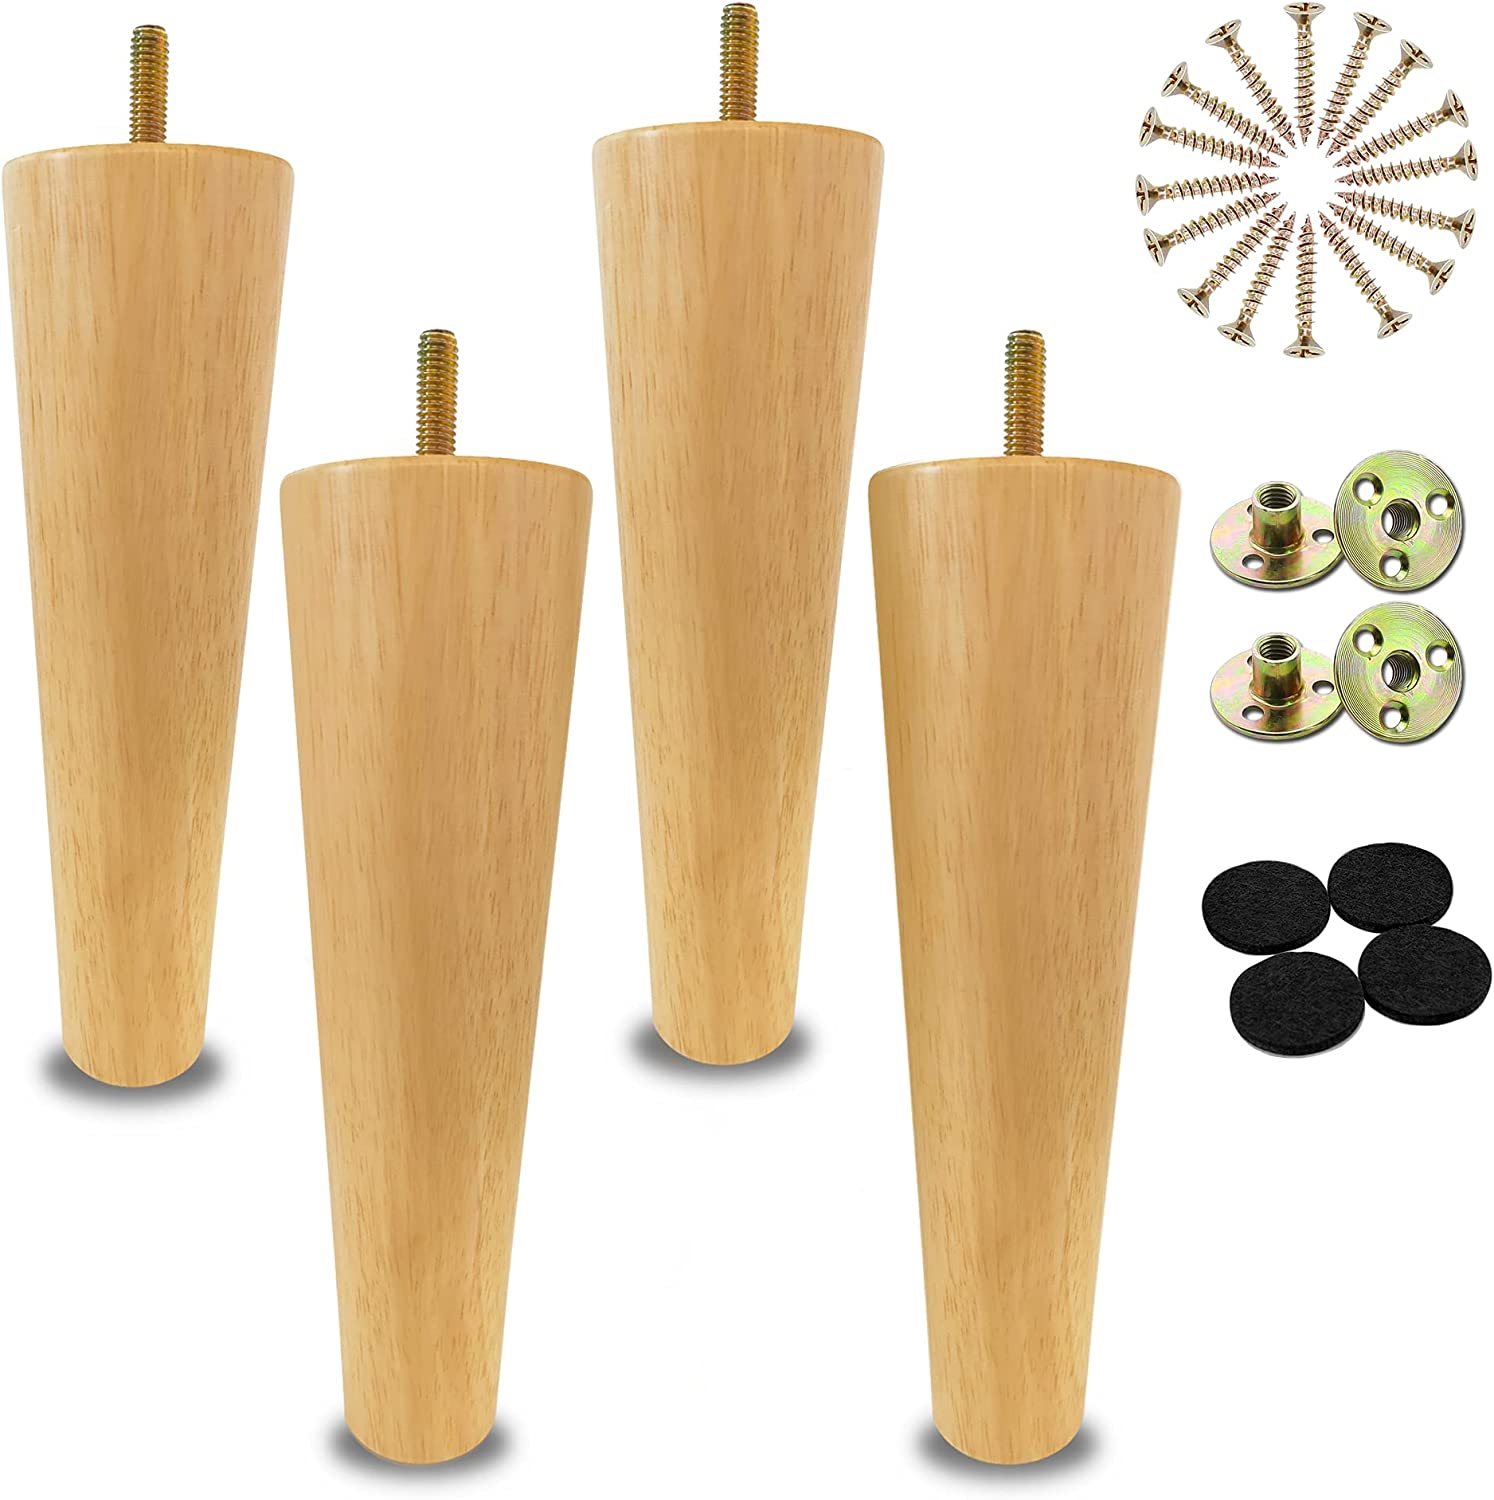 LIANGYUN 8 inch Wooden Legs for Furniture Set of 4 Replacement Legs Perfect for Mid-Century Style Sofa Couch Coffee Table TV Stand DIY Project. Accessories Included